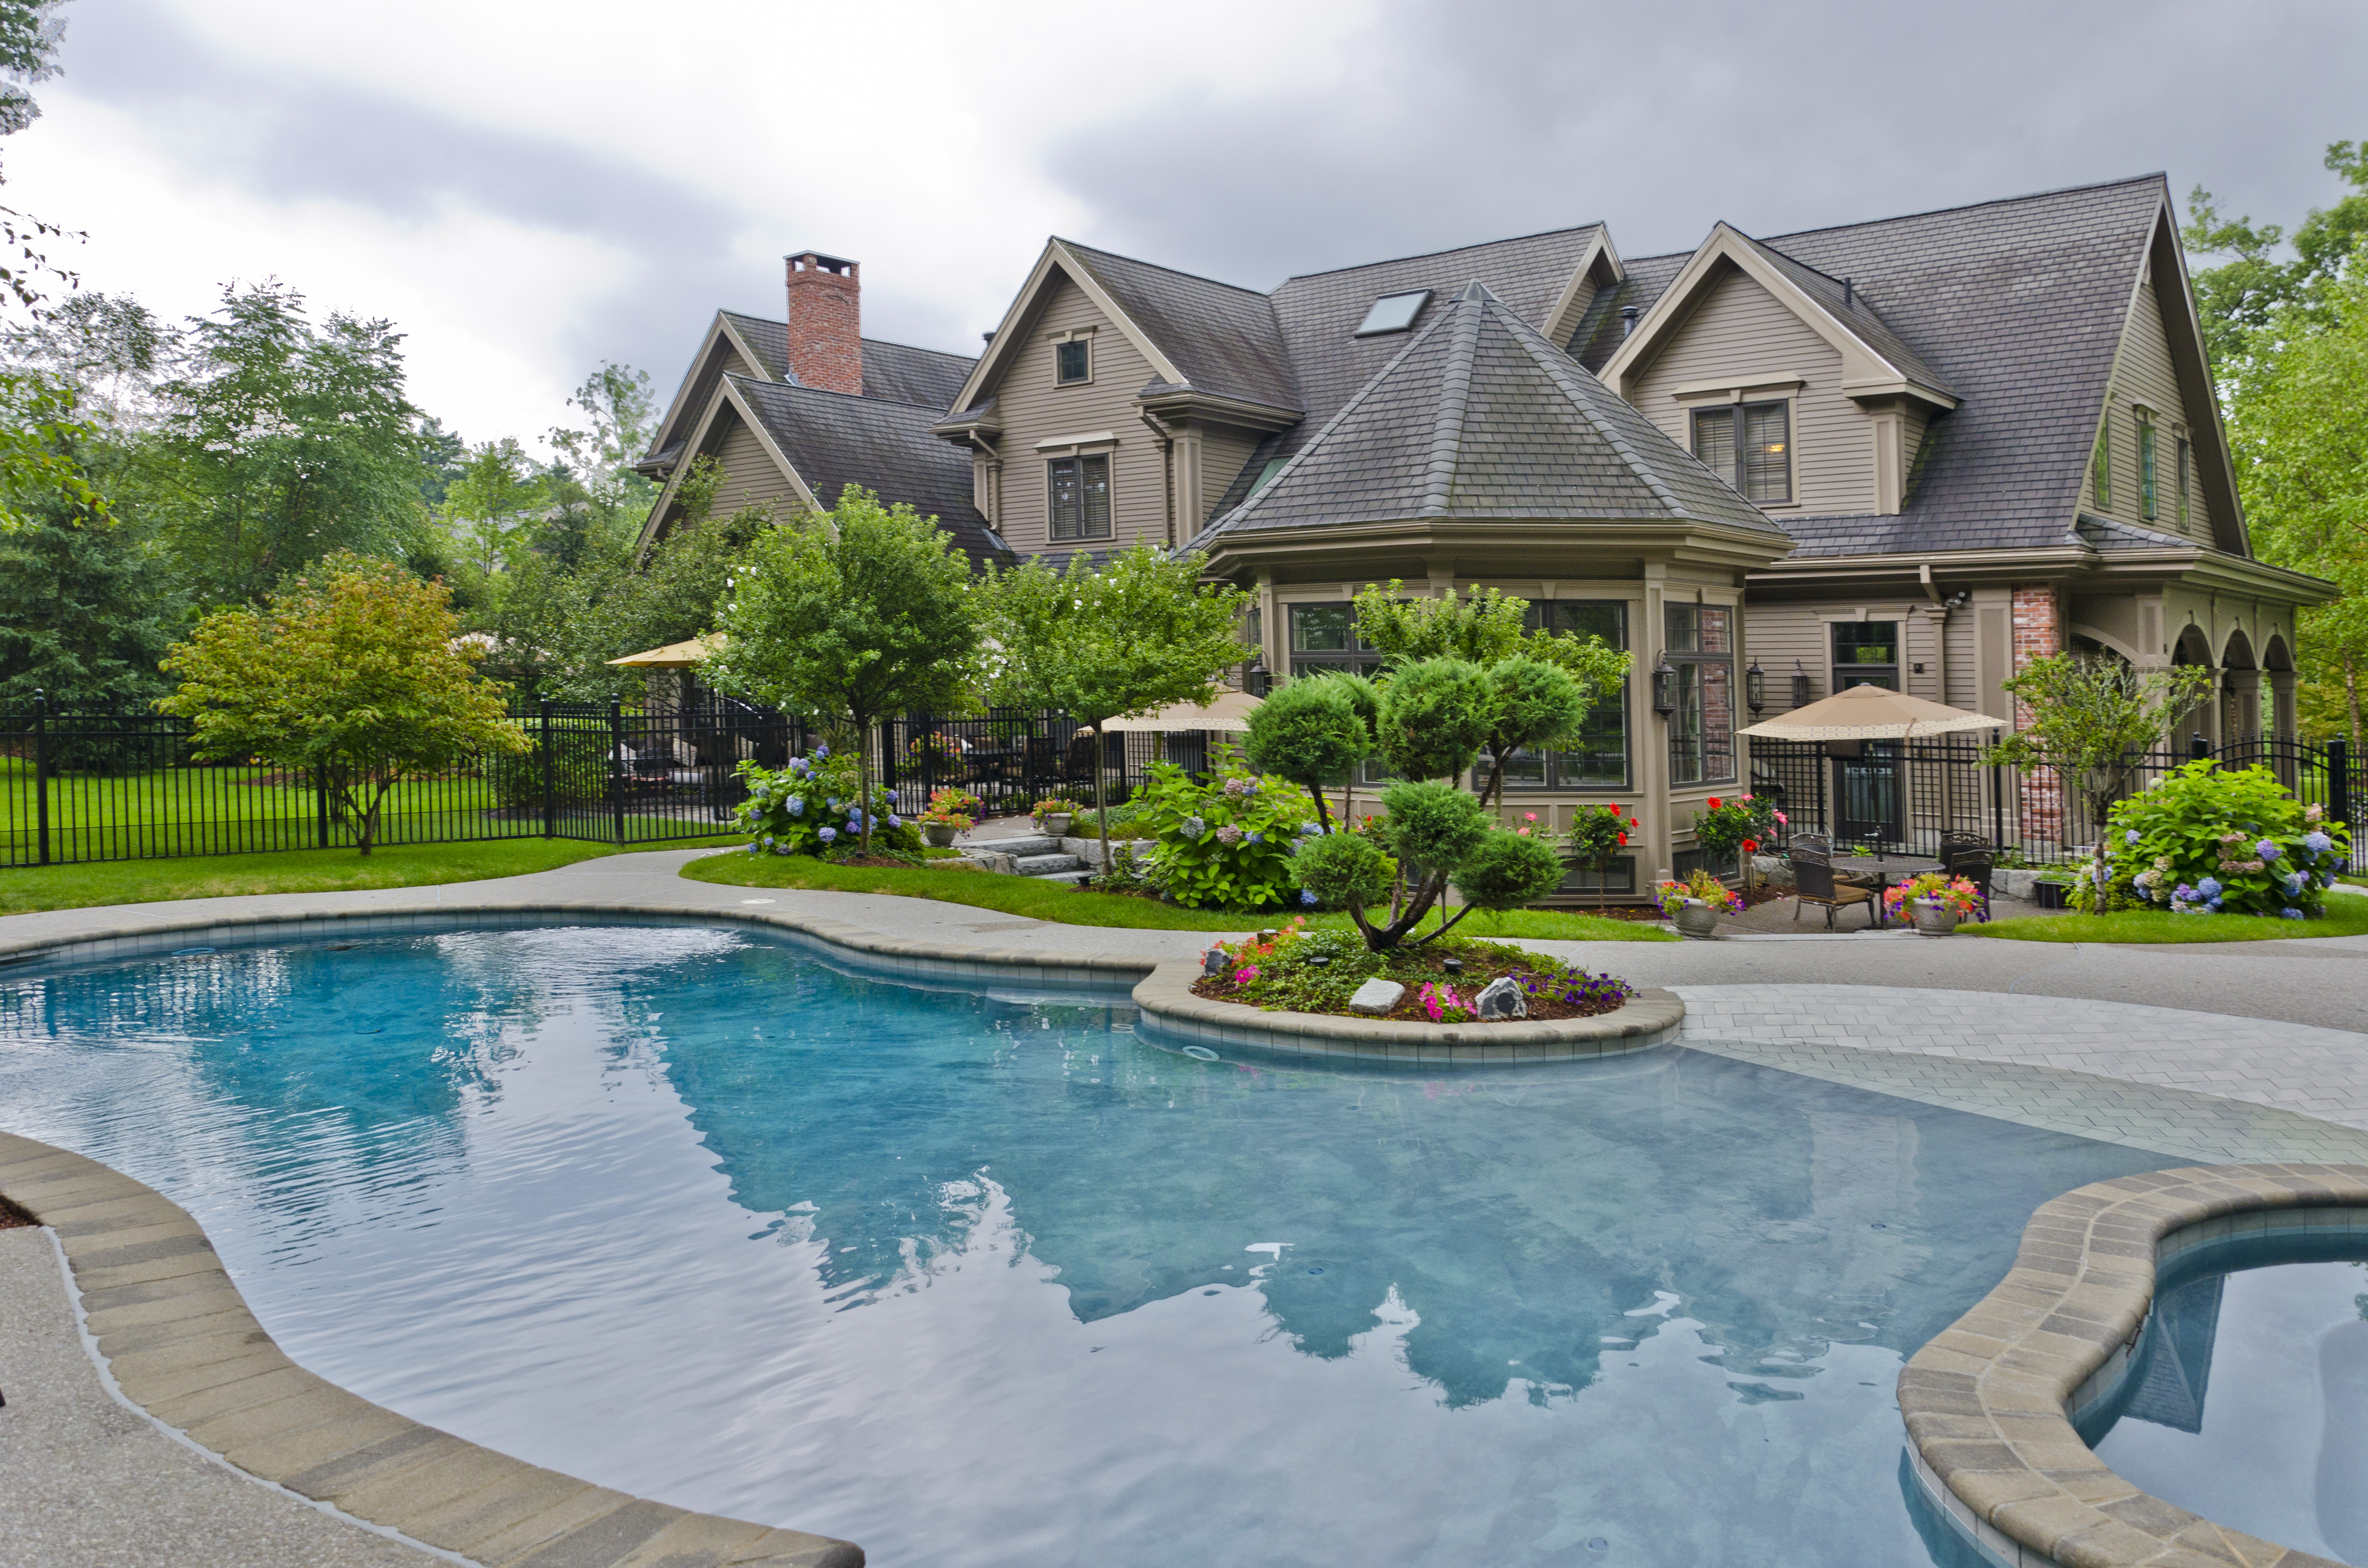 Luxury Homes For Sale In Massachusetts With Incredible Pools And Pool Houses